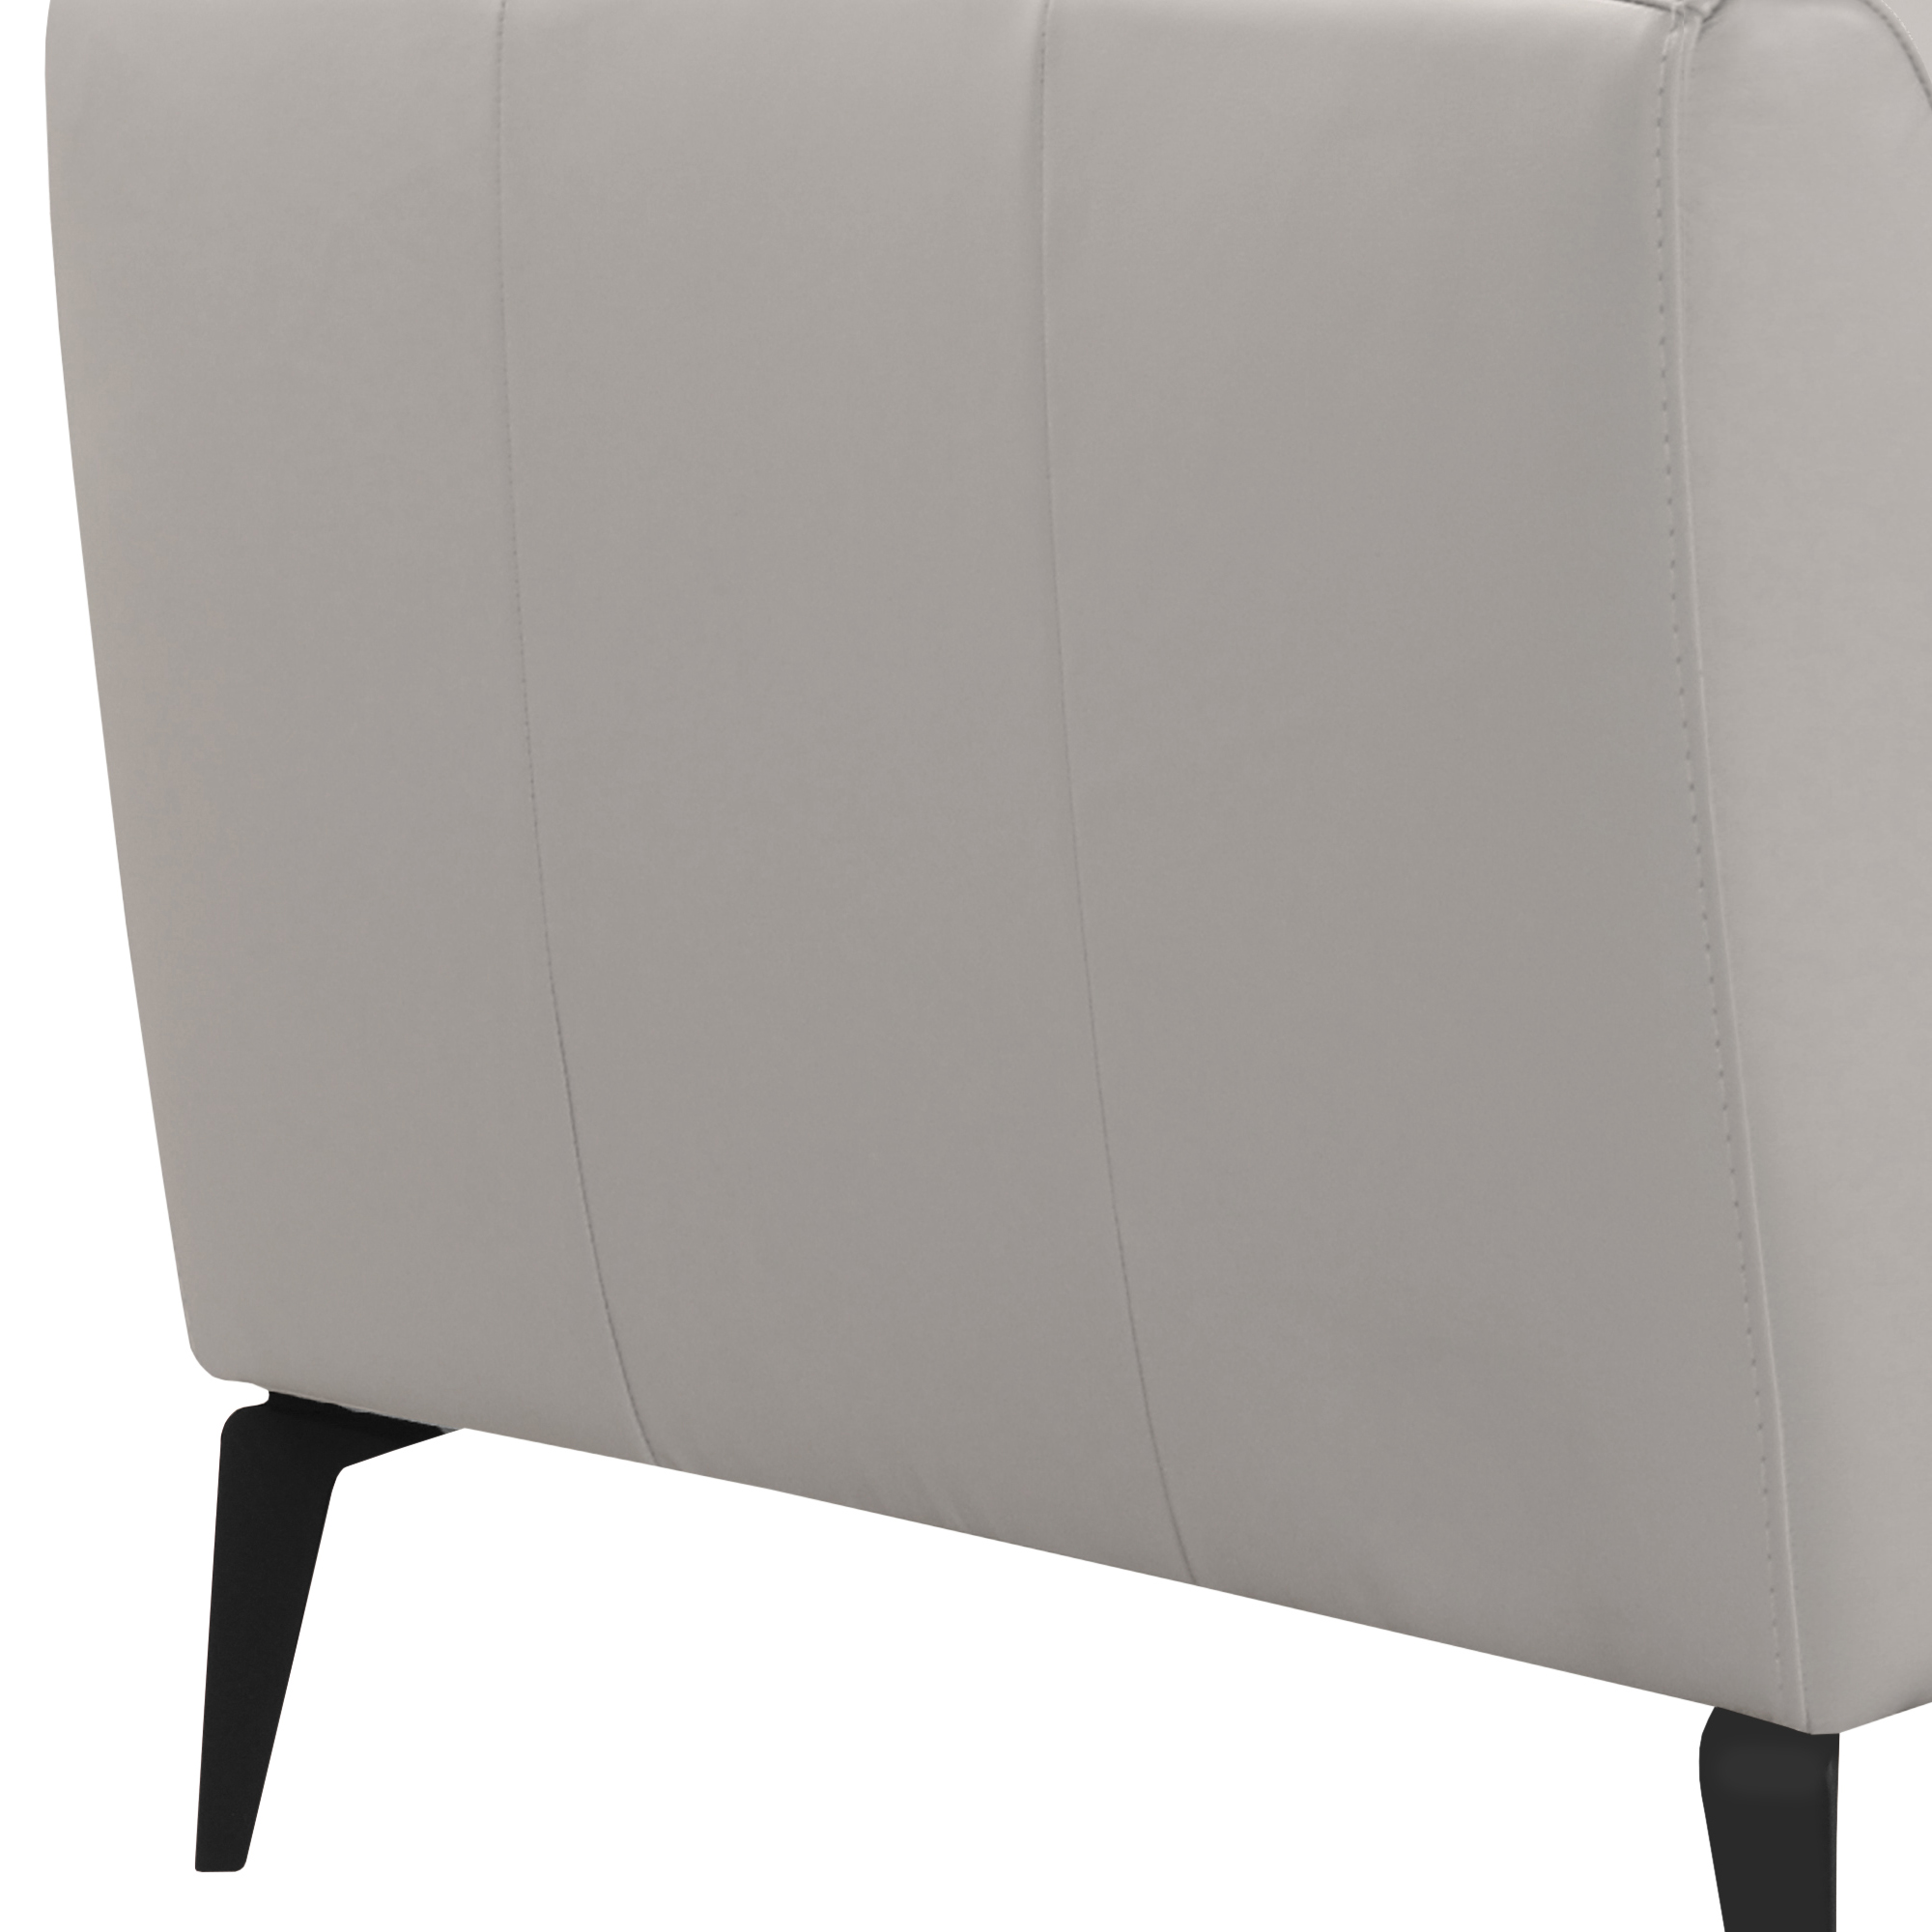 Armen Living Hope Contemporary Chair in Genuine Dove Grey Leather with Black Metal Legs